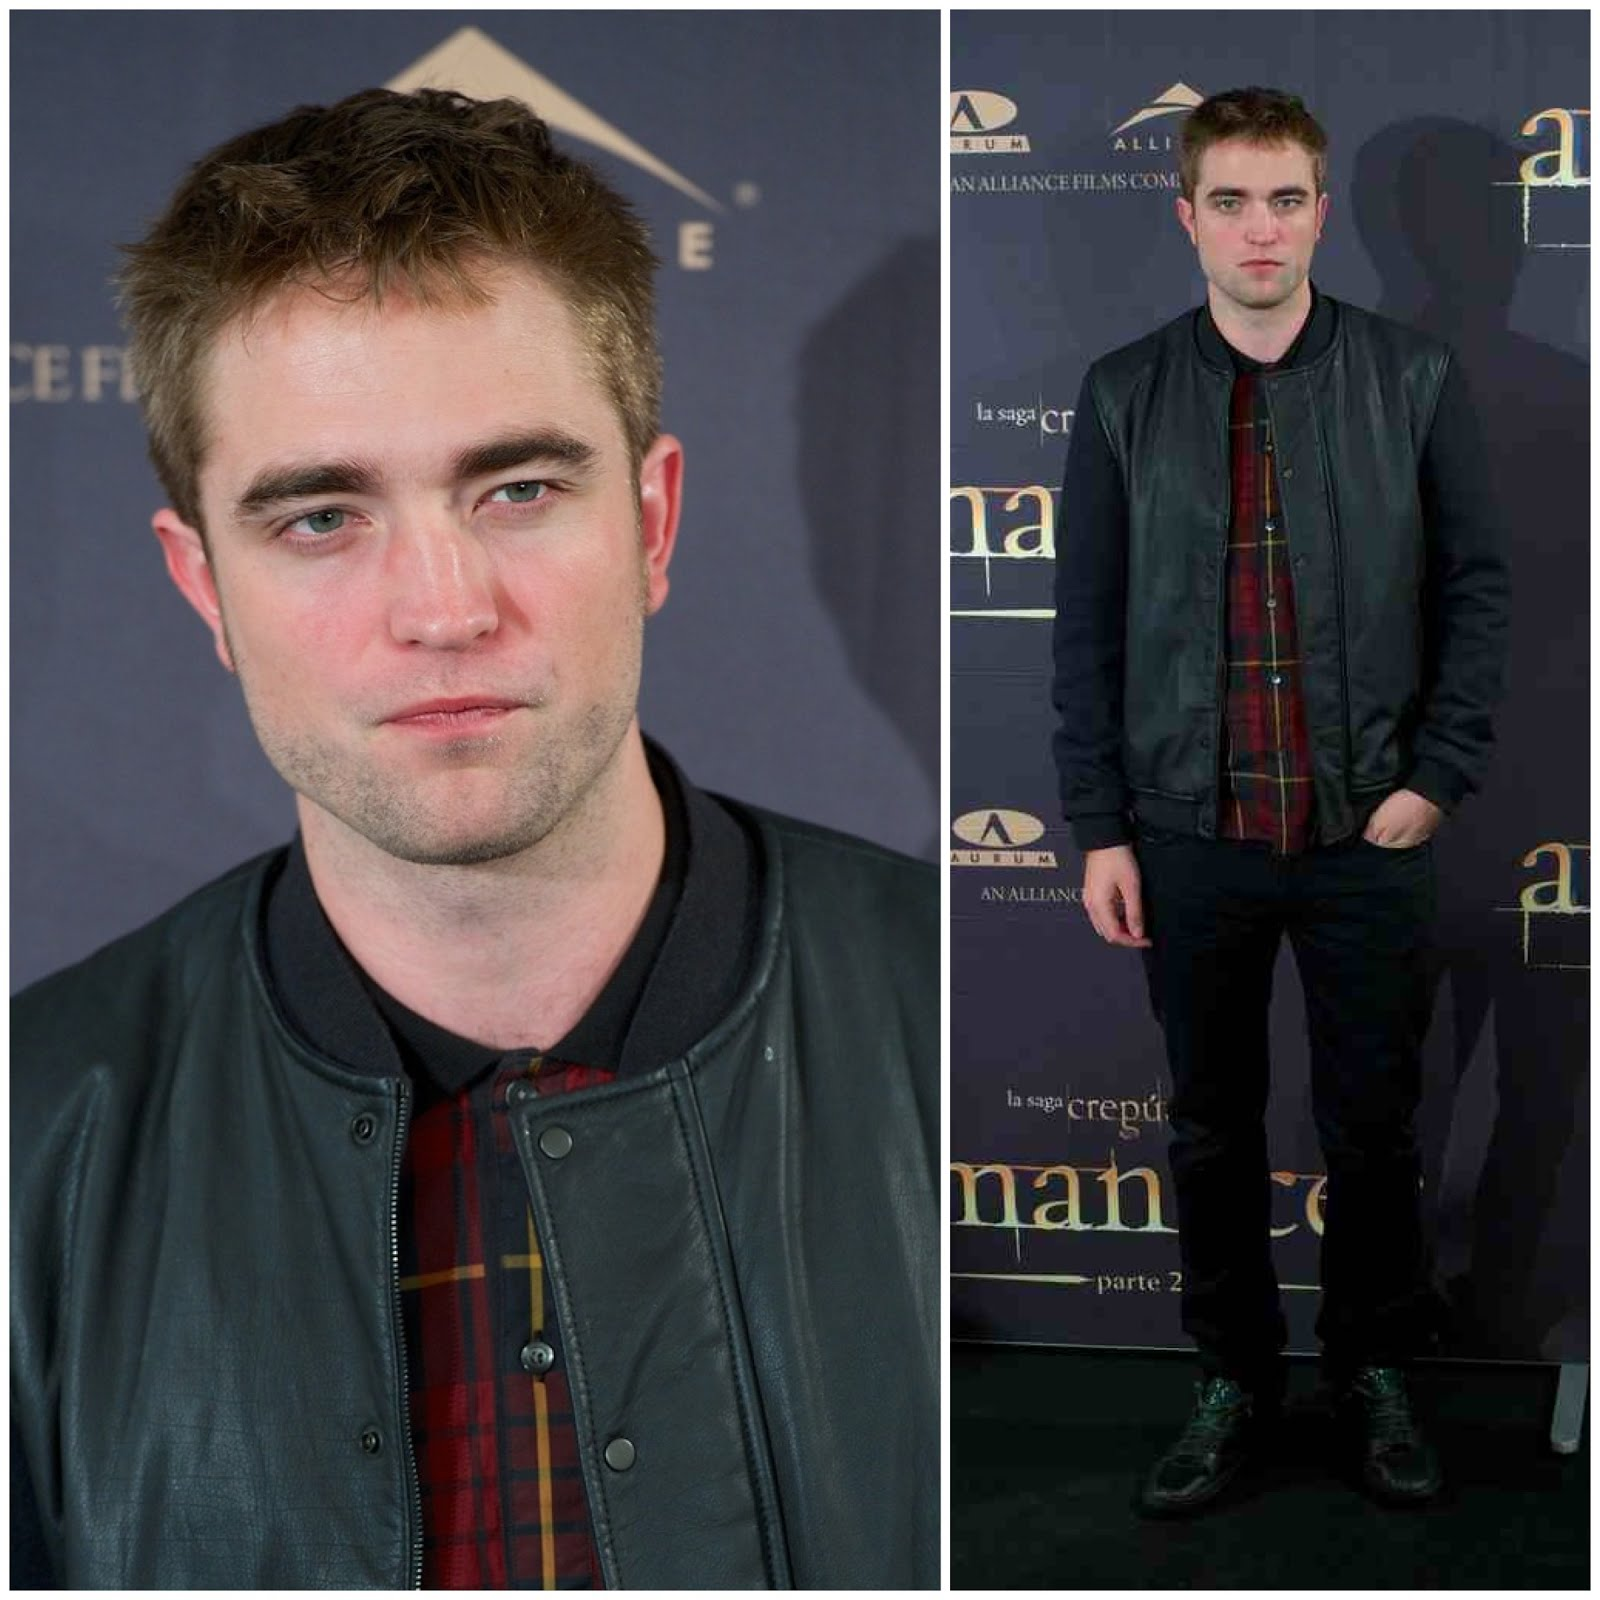 00O00 London Menswear Blog Celebrity Style Robert Pattinson The Twilight Saga: Breaking Dawn - Part 2 Madrid Spain Lanvin leather jacket McQ Alexander McQueen tartan shirt